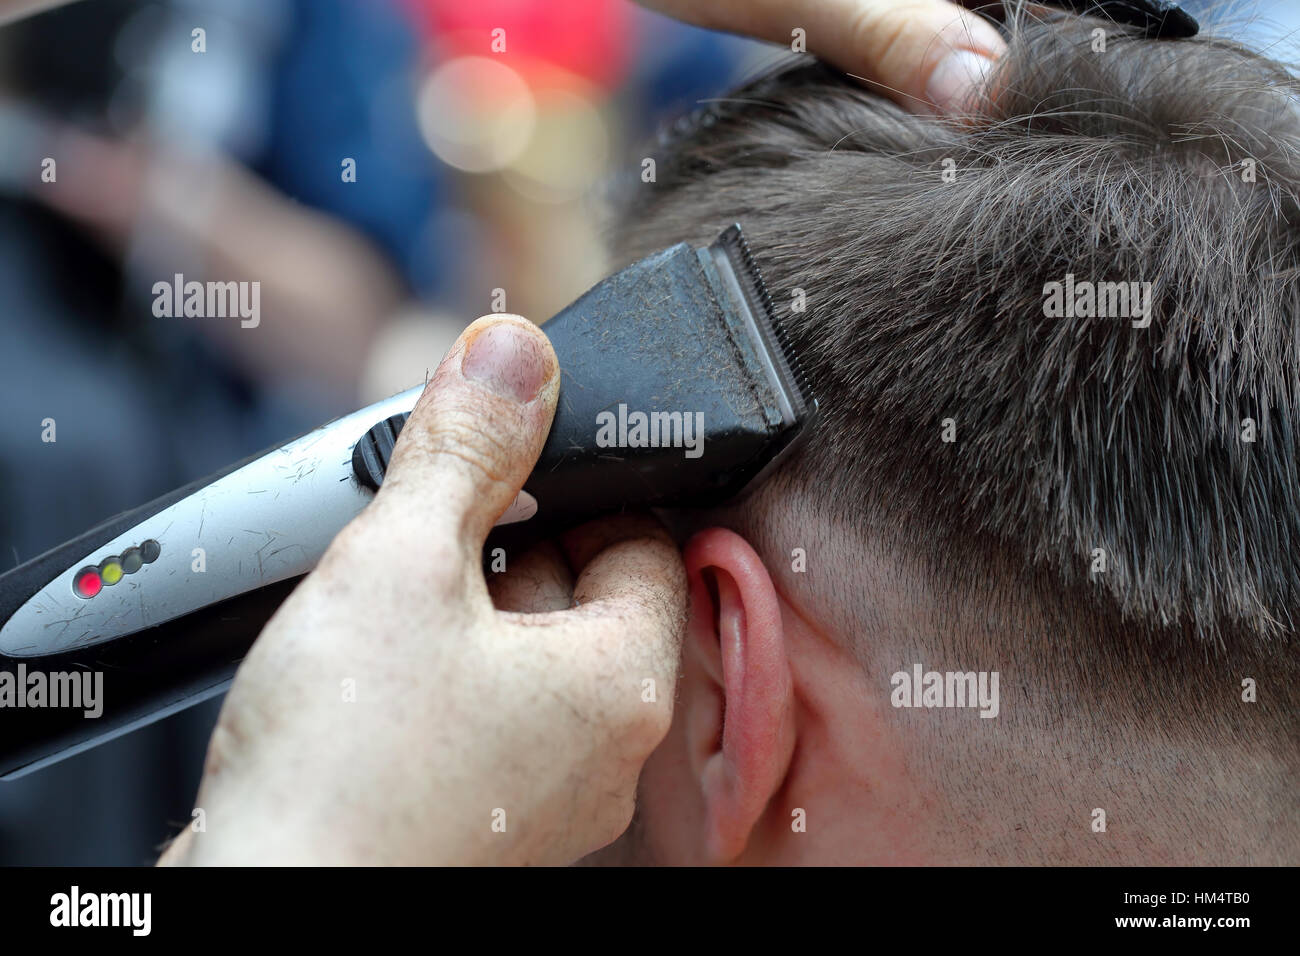 The client at the barber shop haircut by electric trimmer - Stock Image